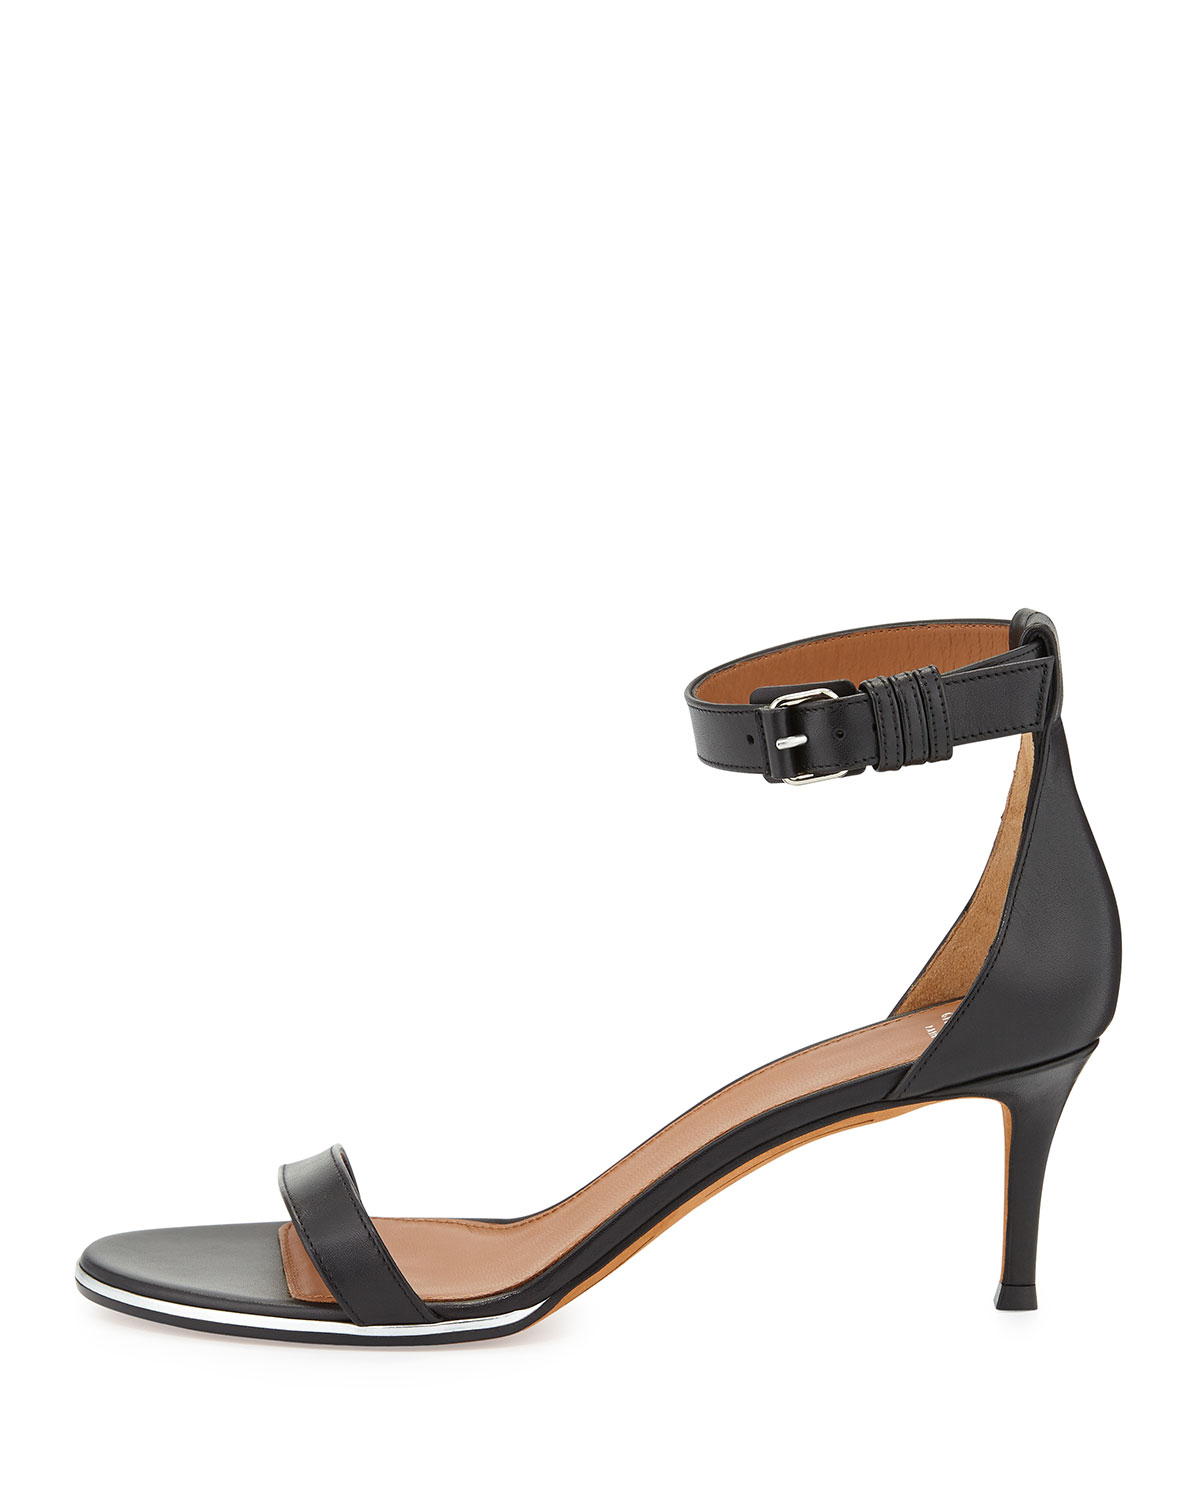 3f9f363be705 Givenchy Leather Zipper Ankle Strap Sandals in Black